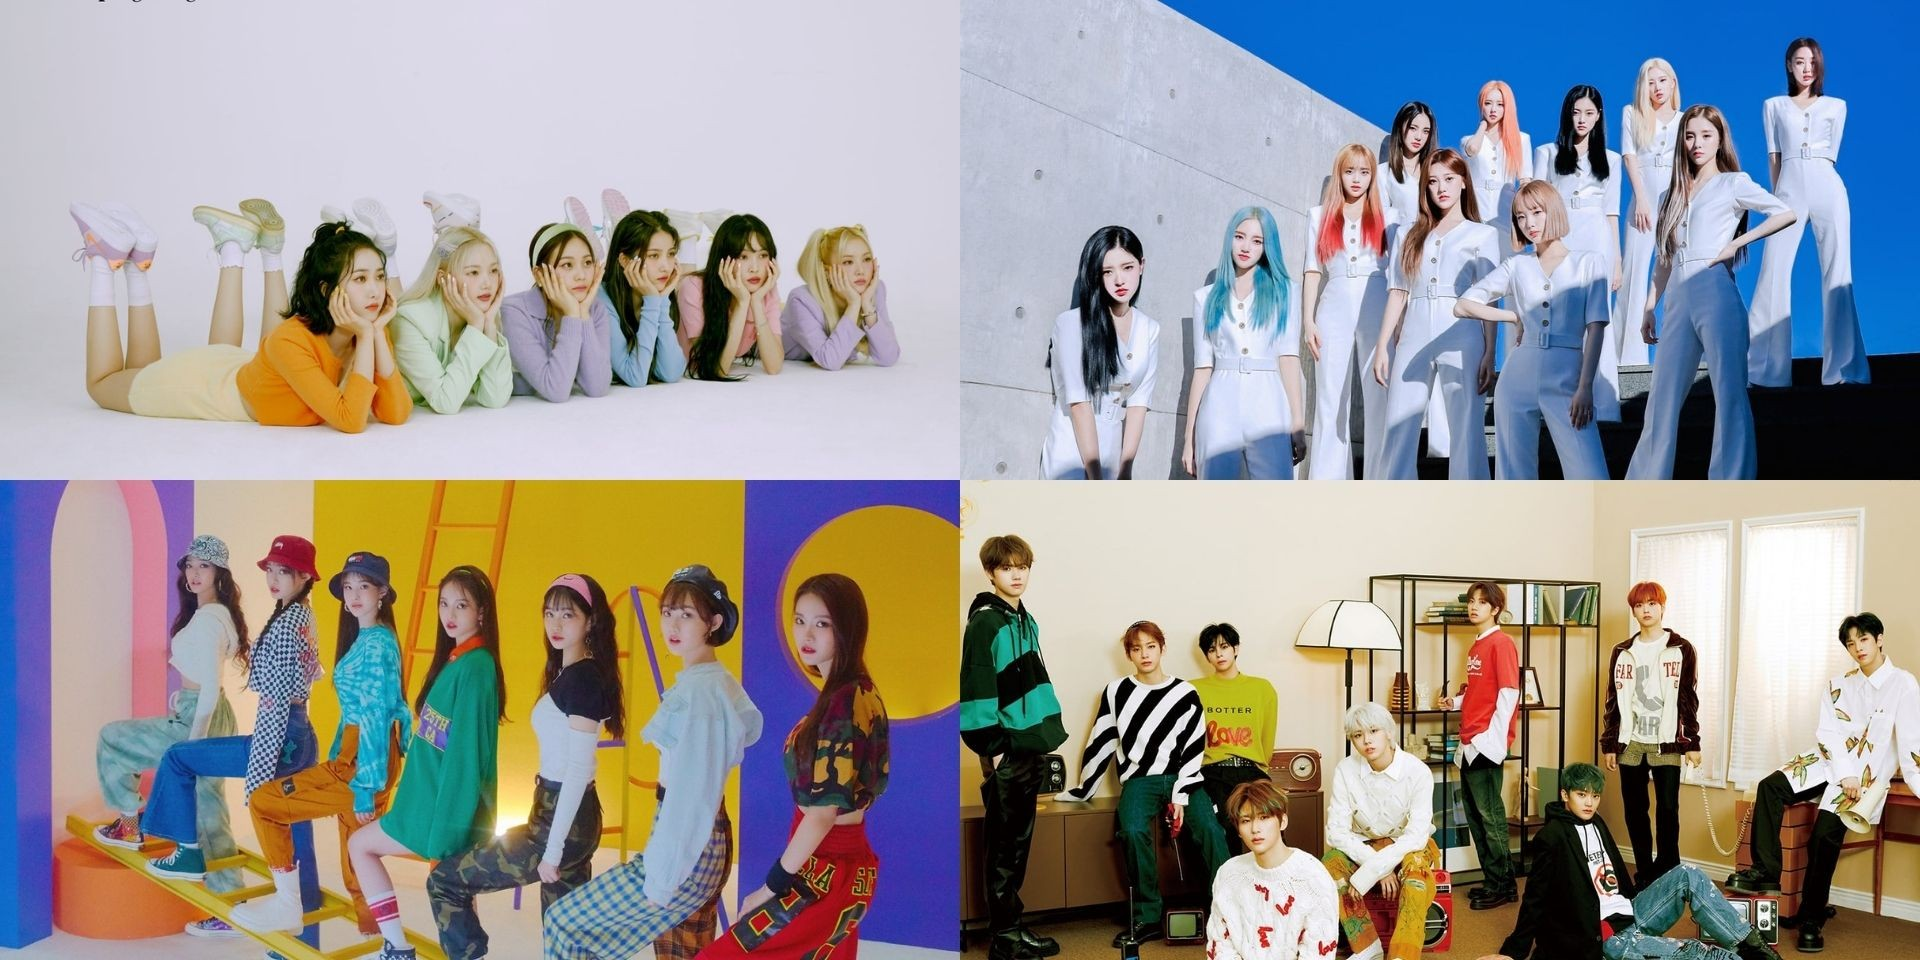 GFRIEND, LOONA, Weeekly, CRAVITY, and more to perform at '2021 Ontact G★KPOP Concert' this May